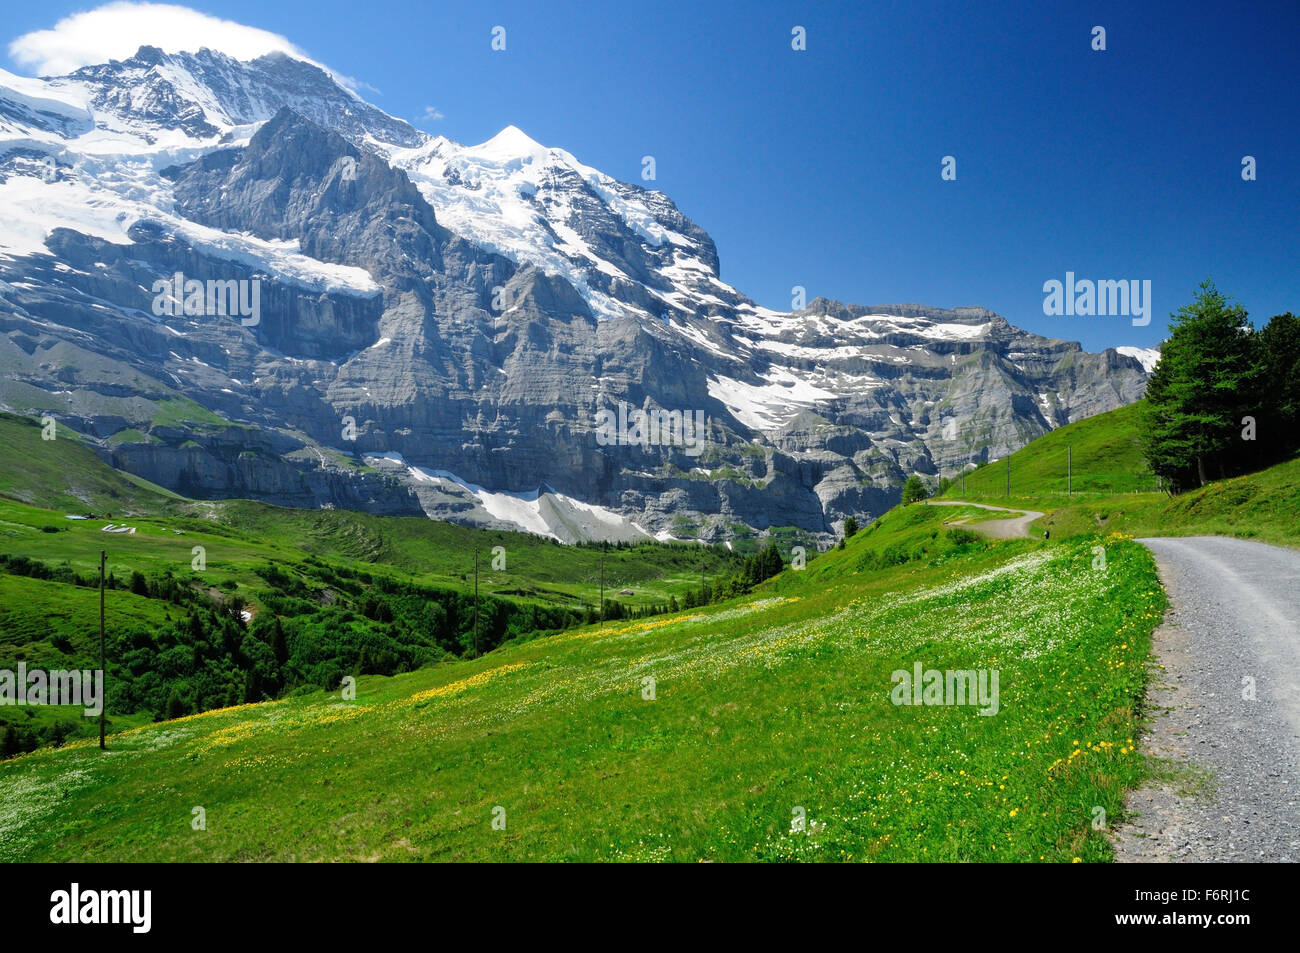 A dome shaped cloud covers the summit of the Jungfrau, seen from the mountain path from Kleine Scheidegg. - Stock Image